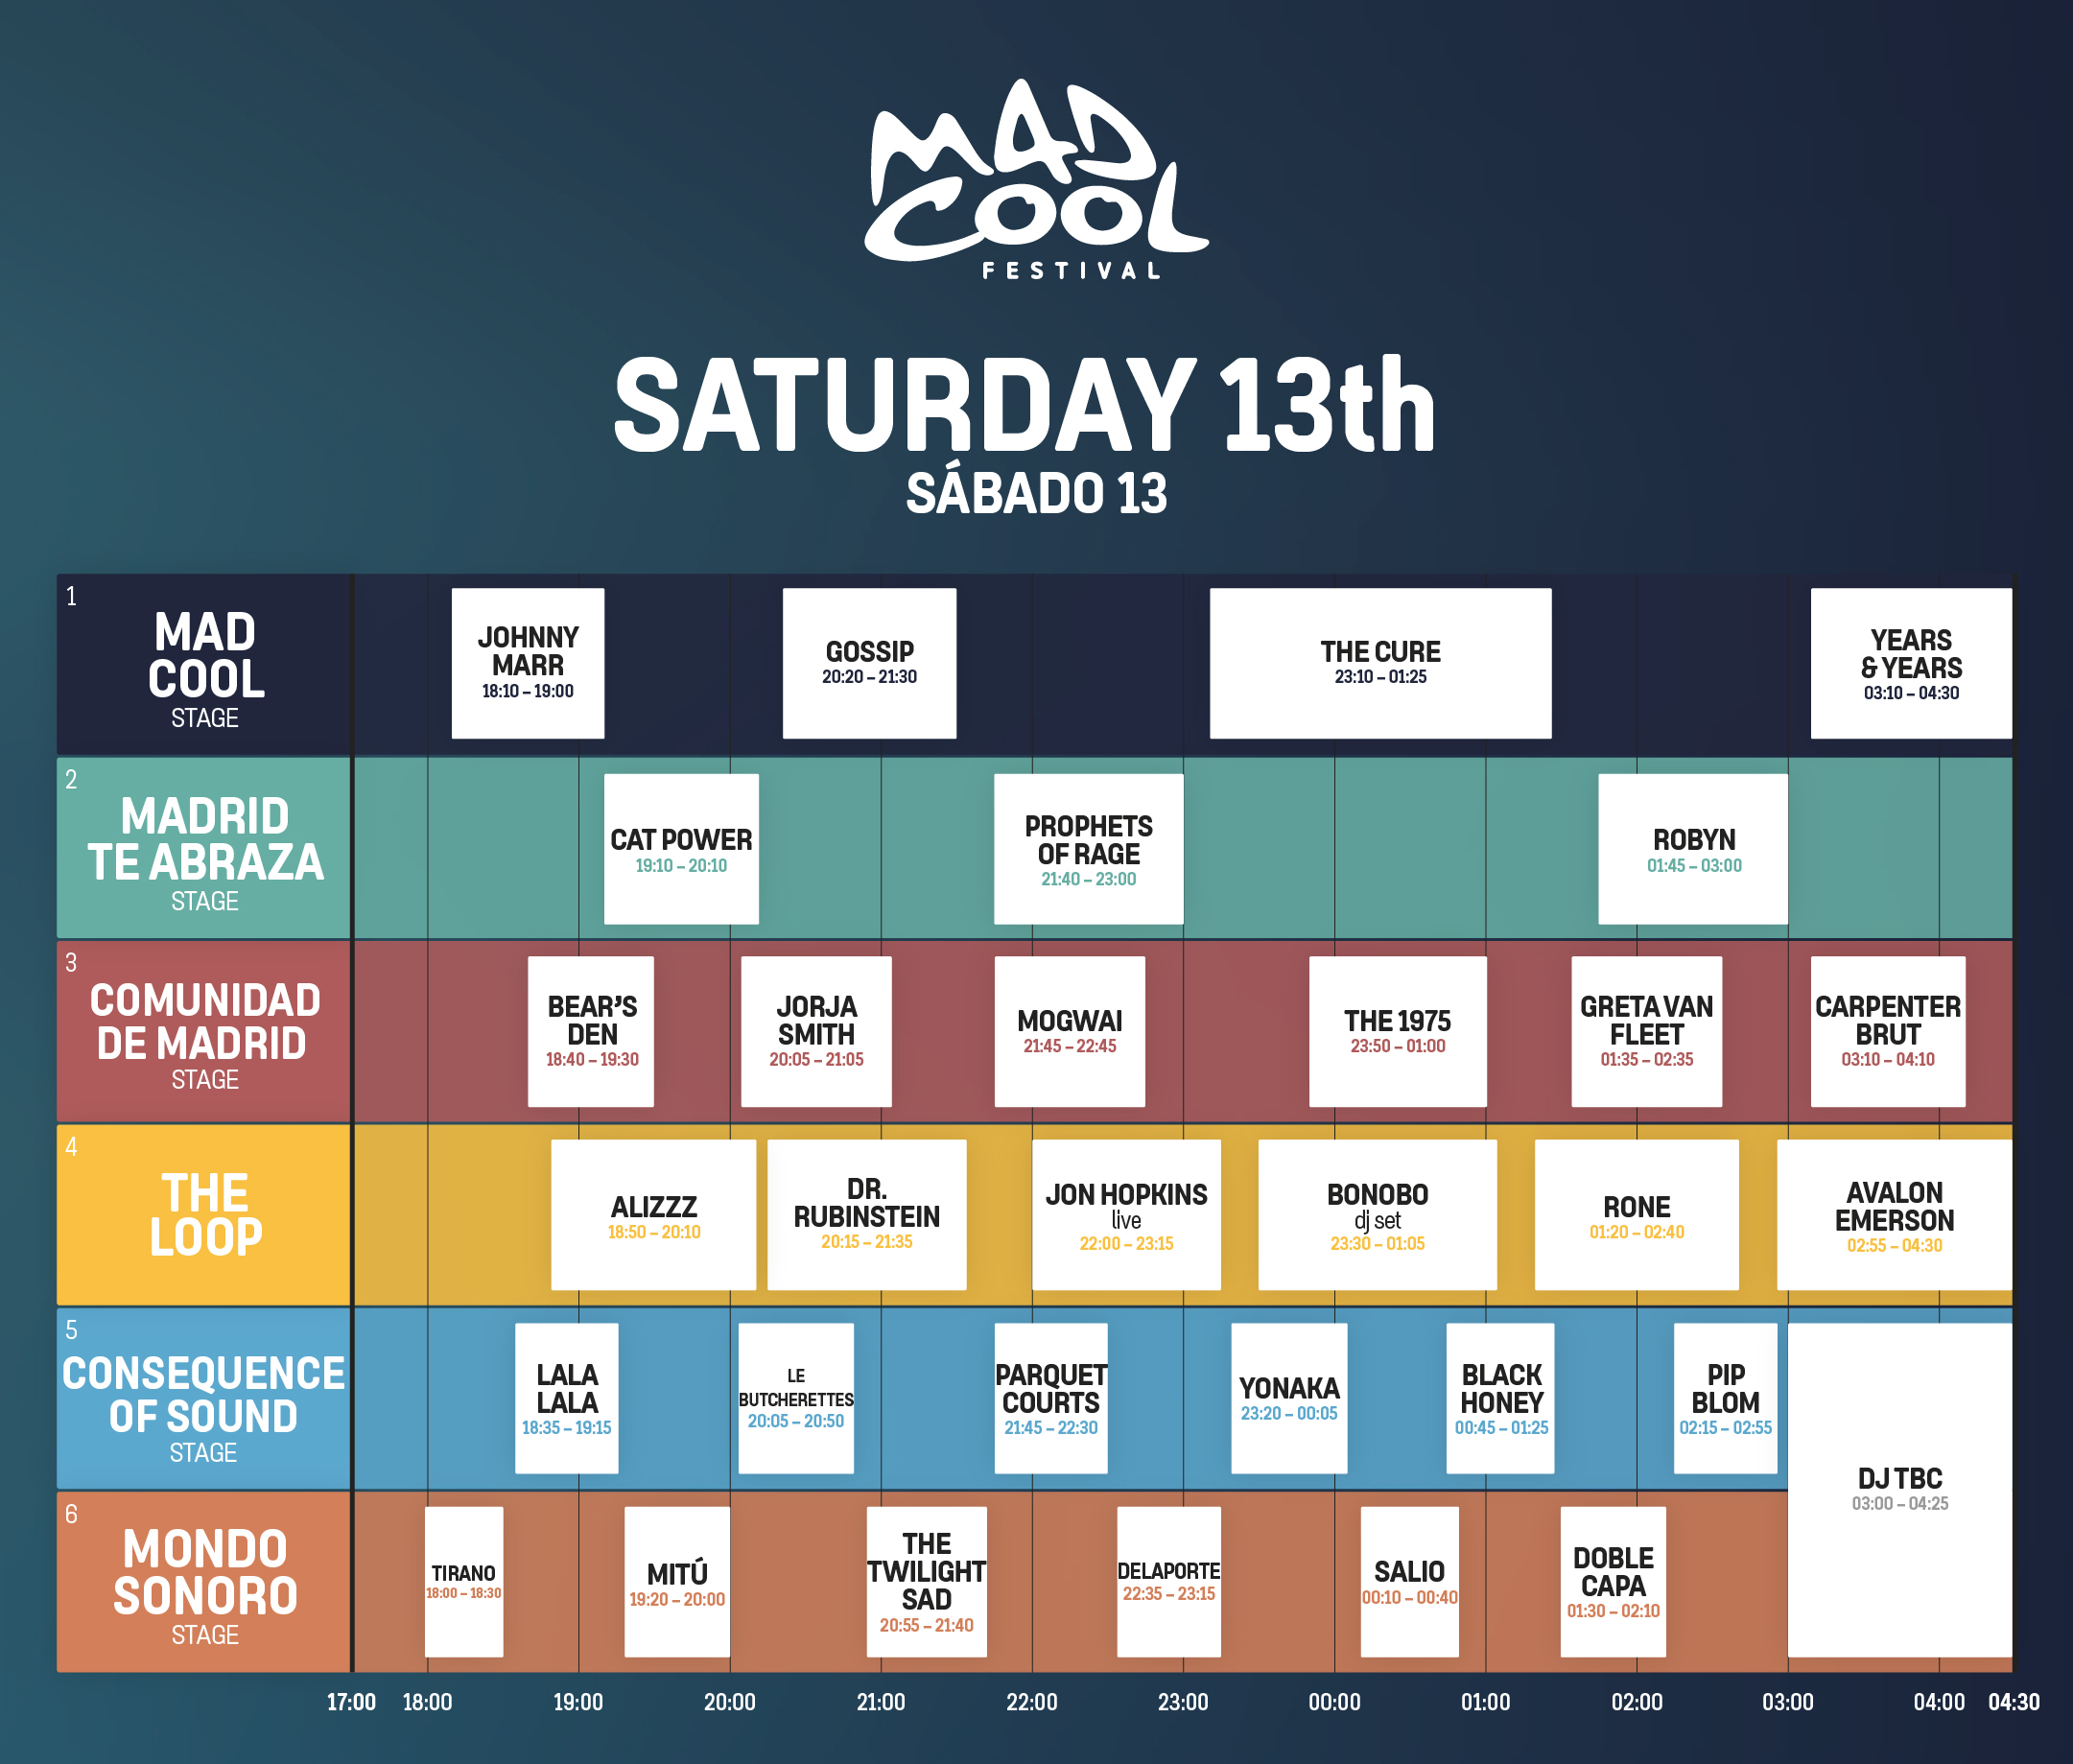 mad cool stage lineup 2019 saturday